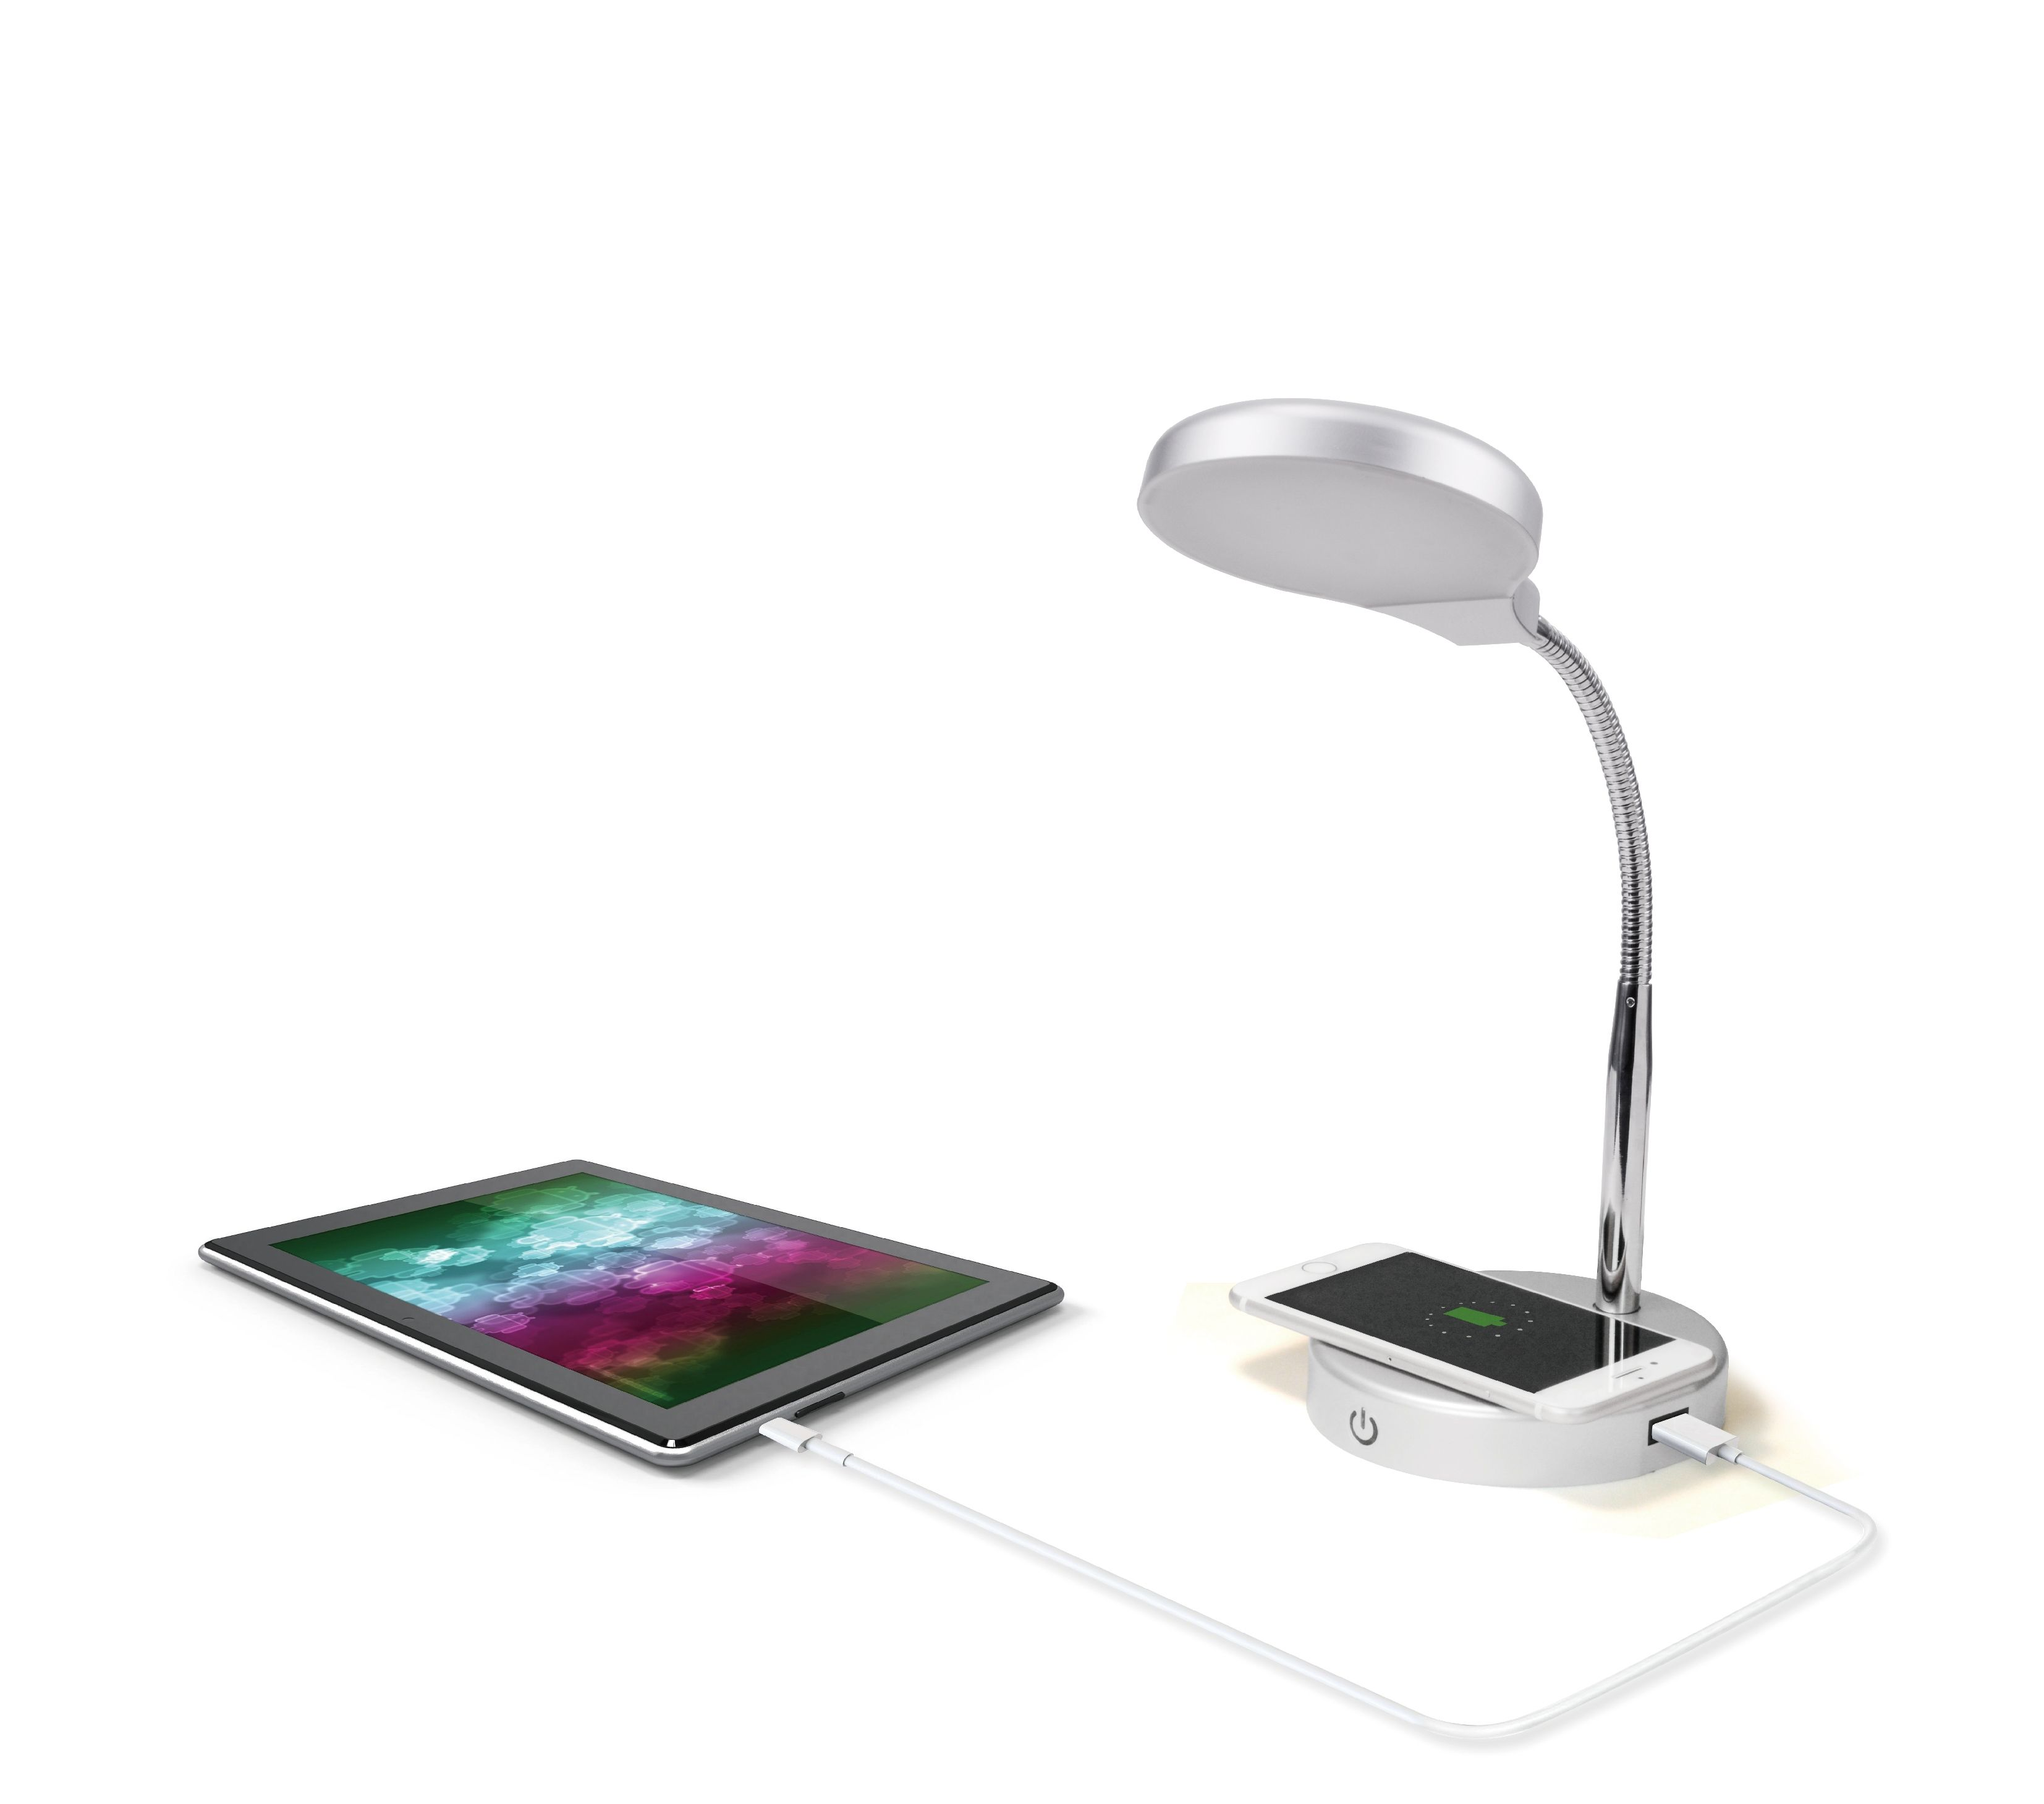 Mainstays 3 5 Watt Dimmable Led Desk Lamp With Usb Port Black Walmart Com Desk Lamp Led Desk Lamp Lamp